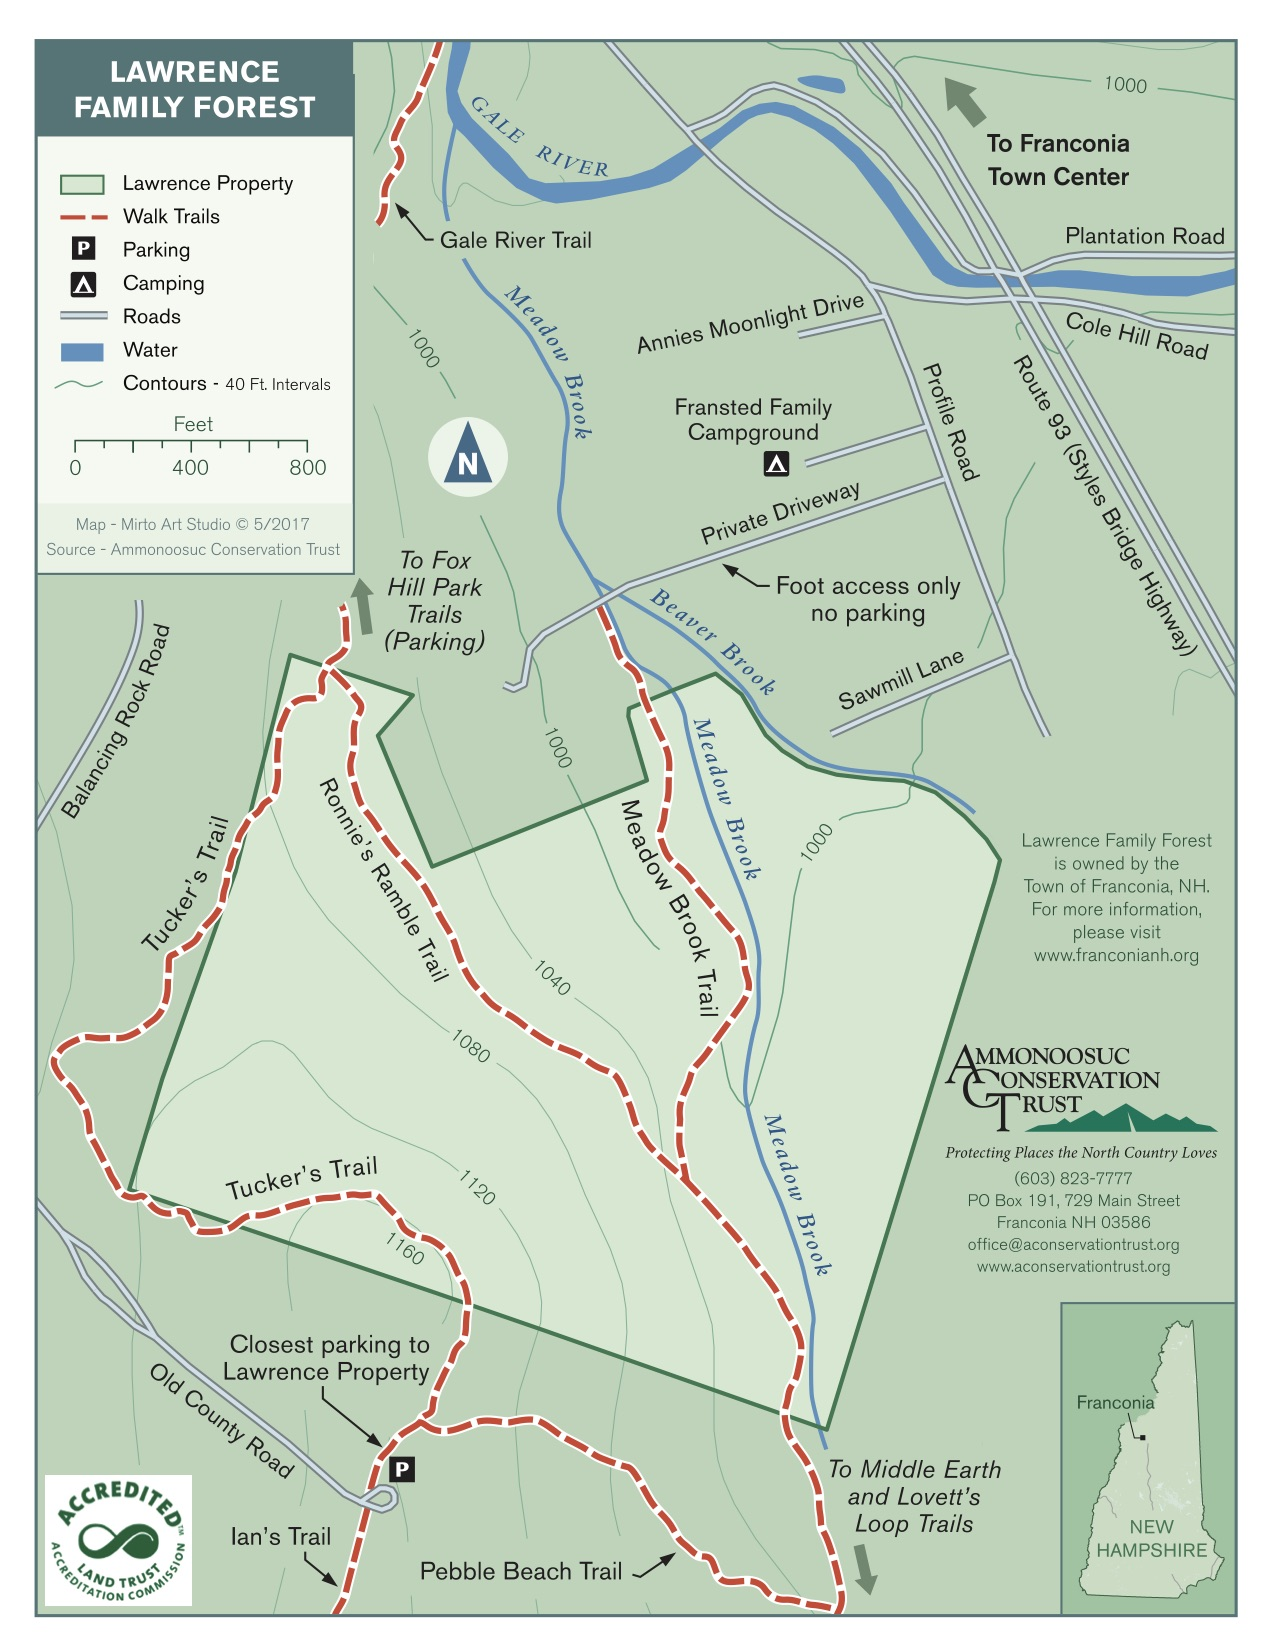 Download  a PDF of the trail map